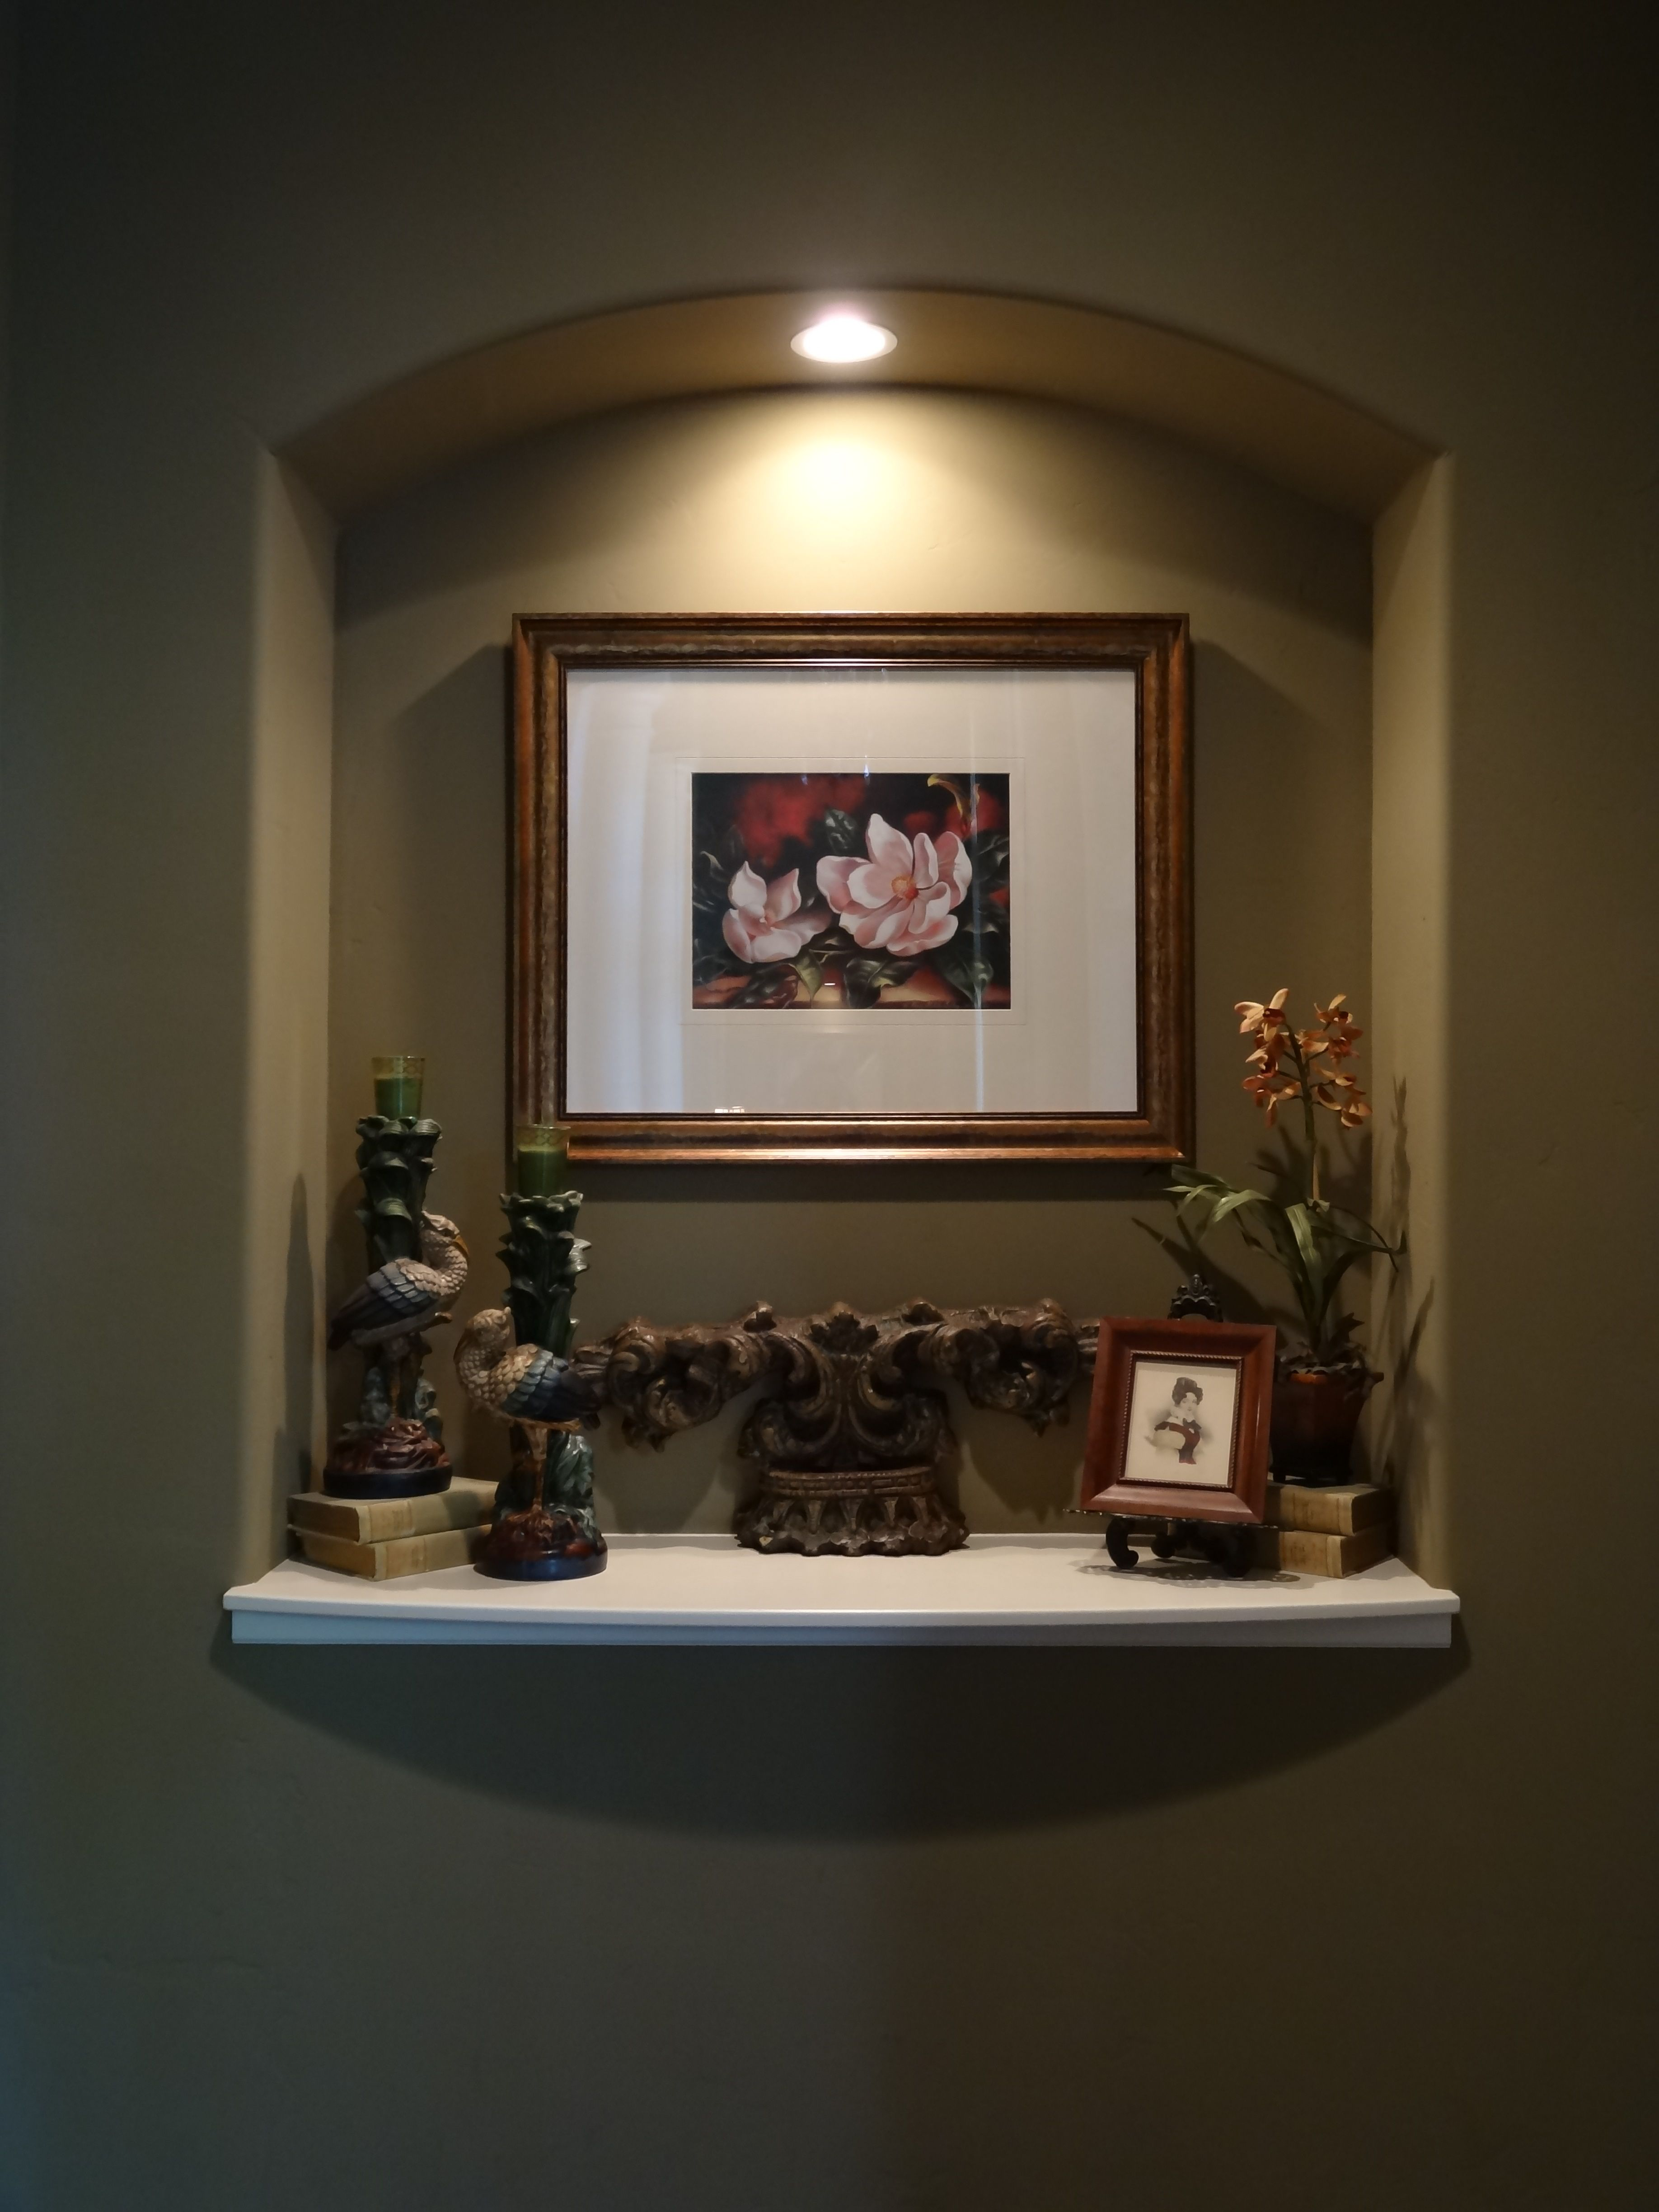 This makes an nice idea for a wall niche